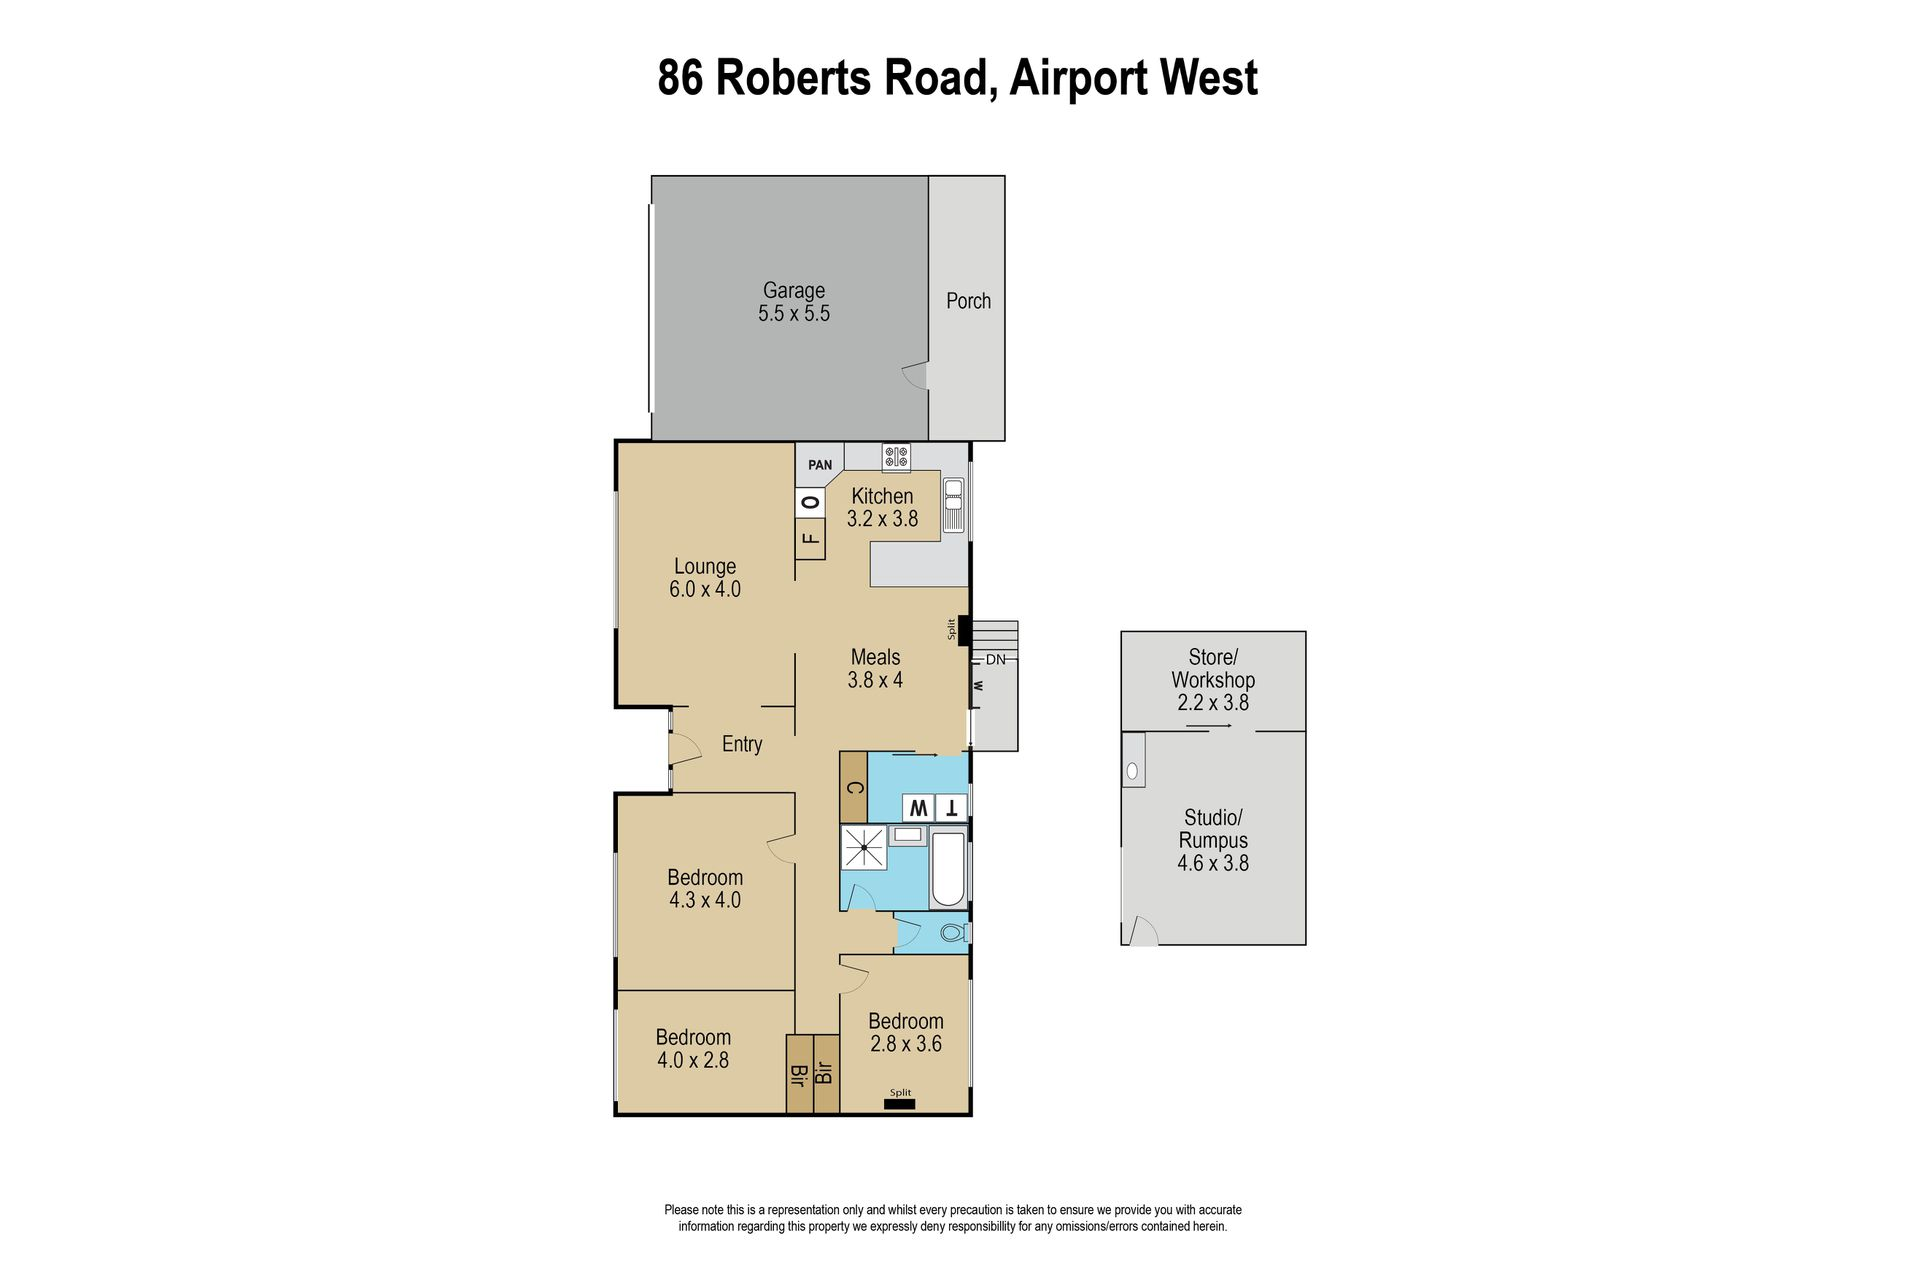 86 Roberts Road, Airport West